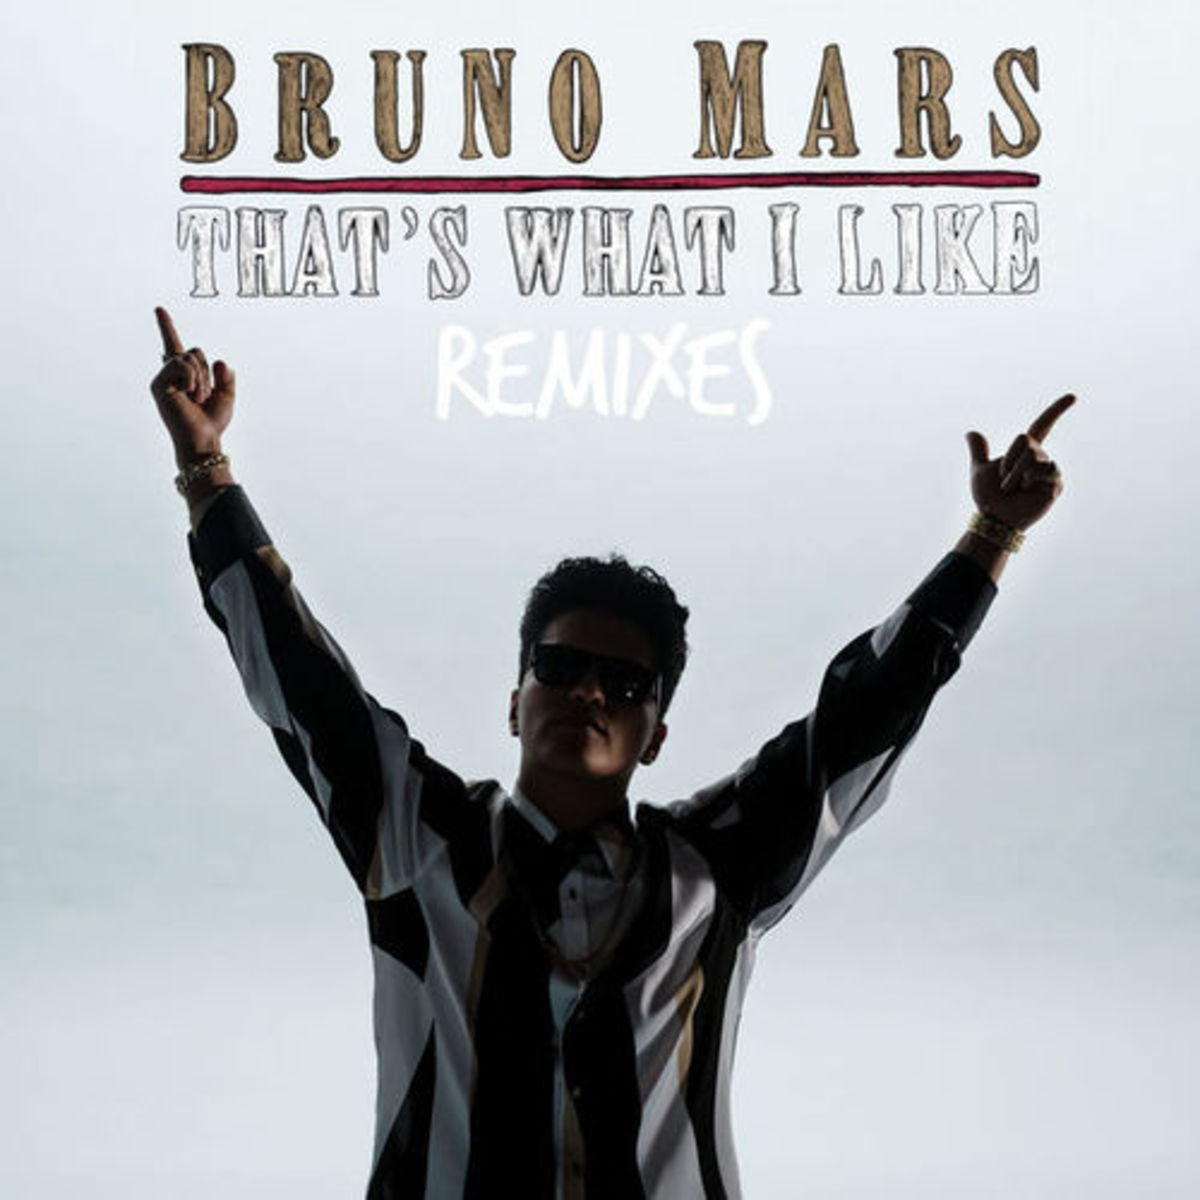 bruno-mars-thats-what-i-like-rmxes.jpg